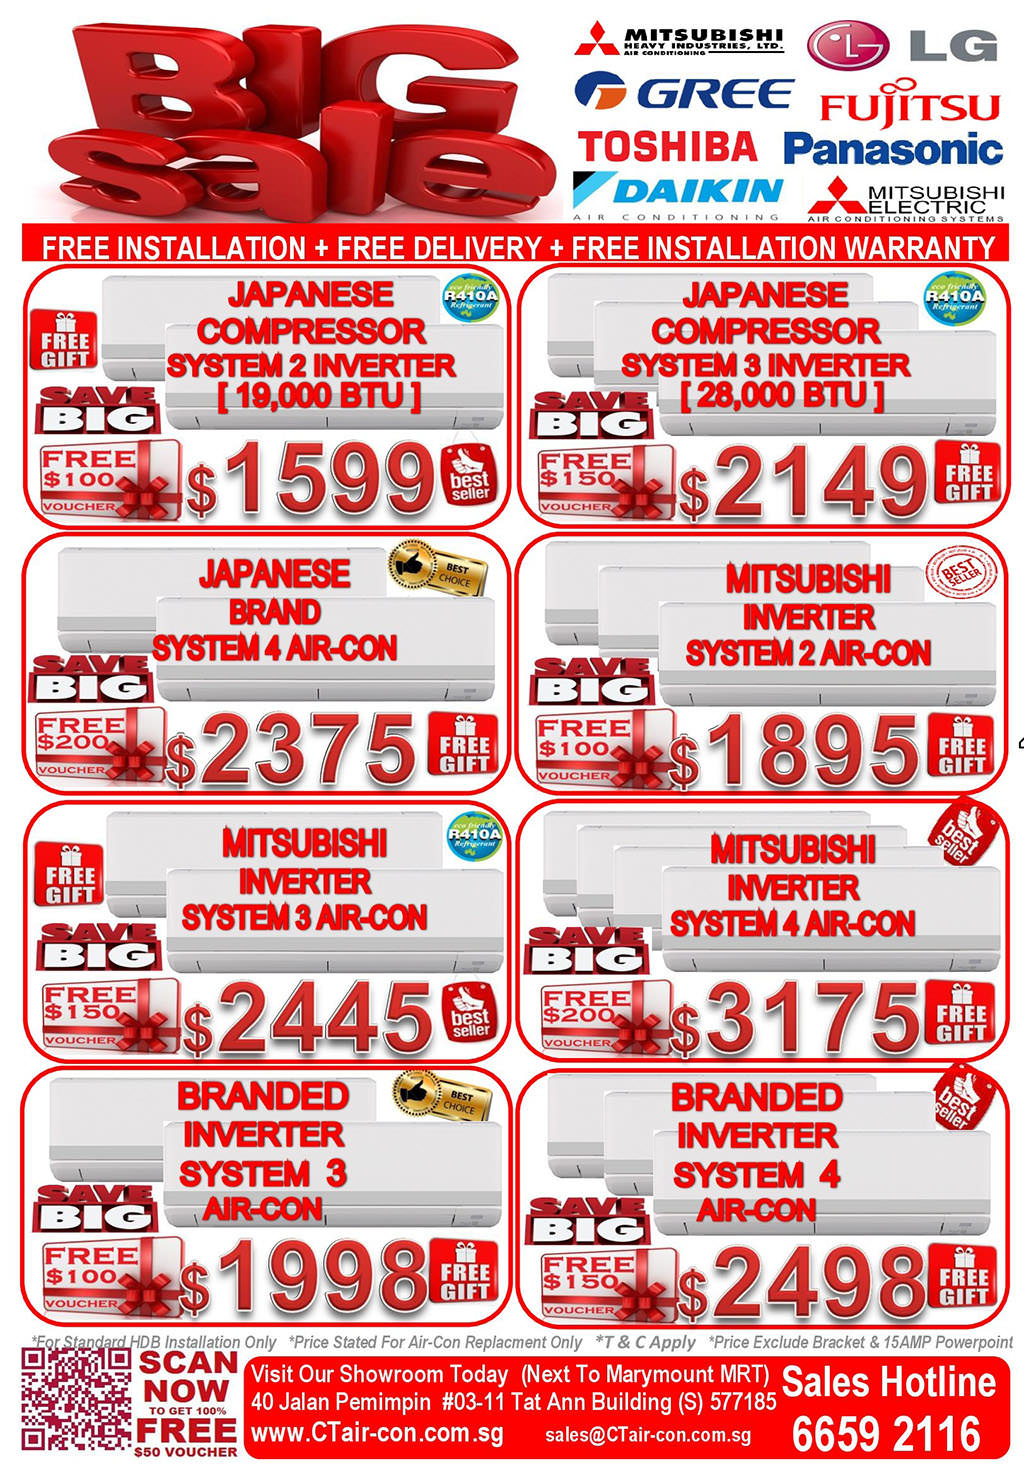 CT Air-con Big Sale On Branded Japanese Compressor Inverter Air-conditioning Systems March 2014